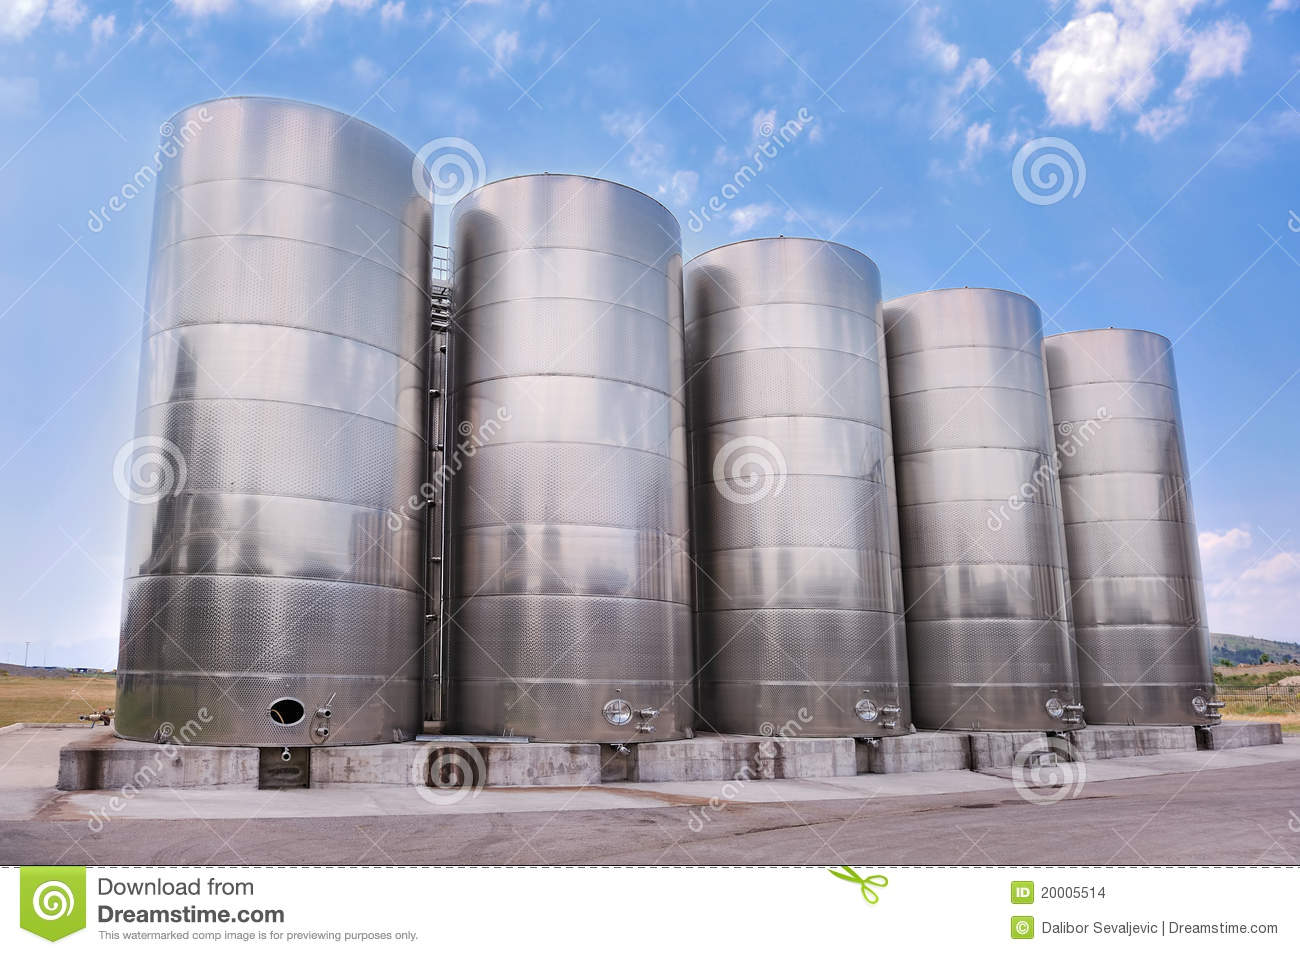 3a6eae406a956 Steel Tanks Storing Liquids Stock Photo - Image of metal